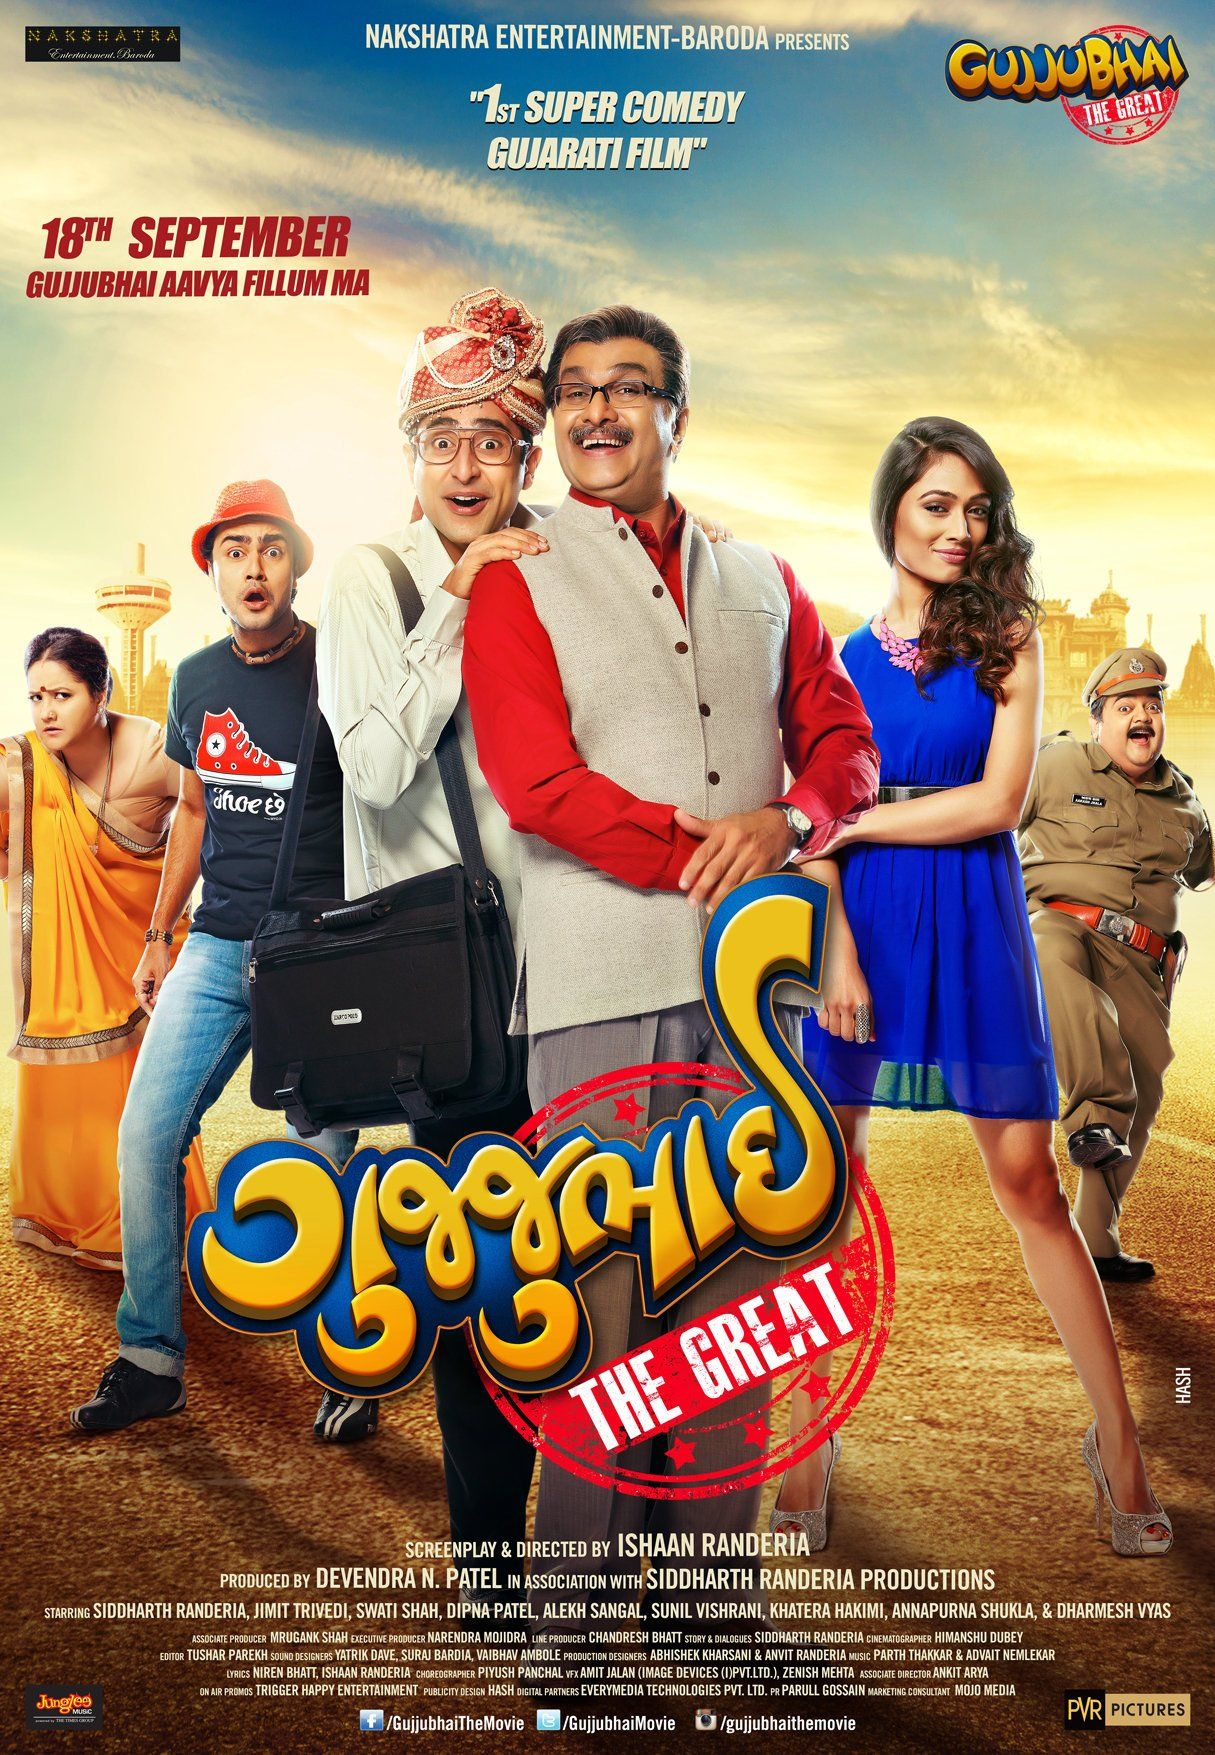 Gujjubhai the Great (2015) | Comedy films, Download movies